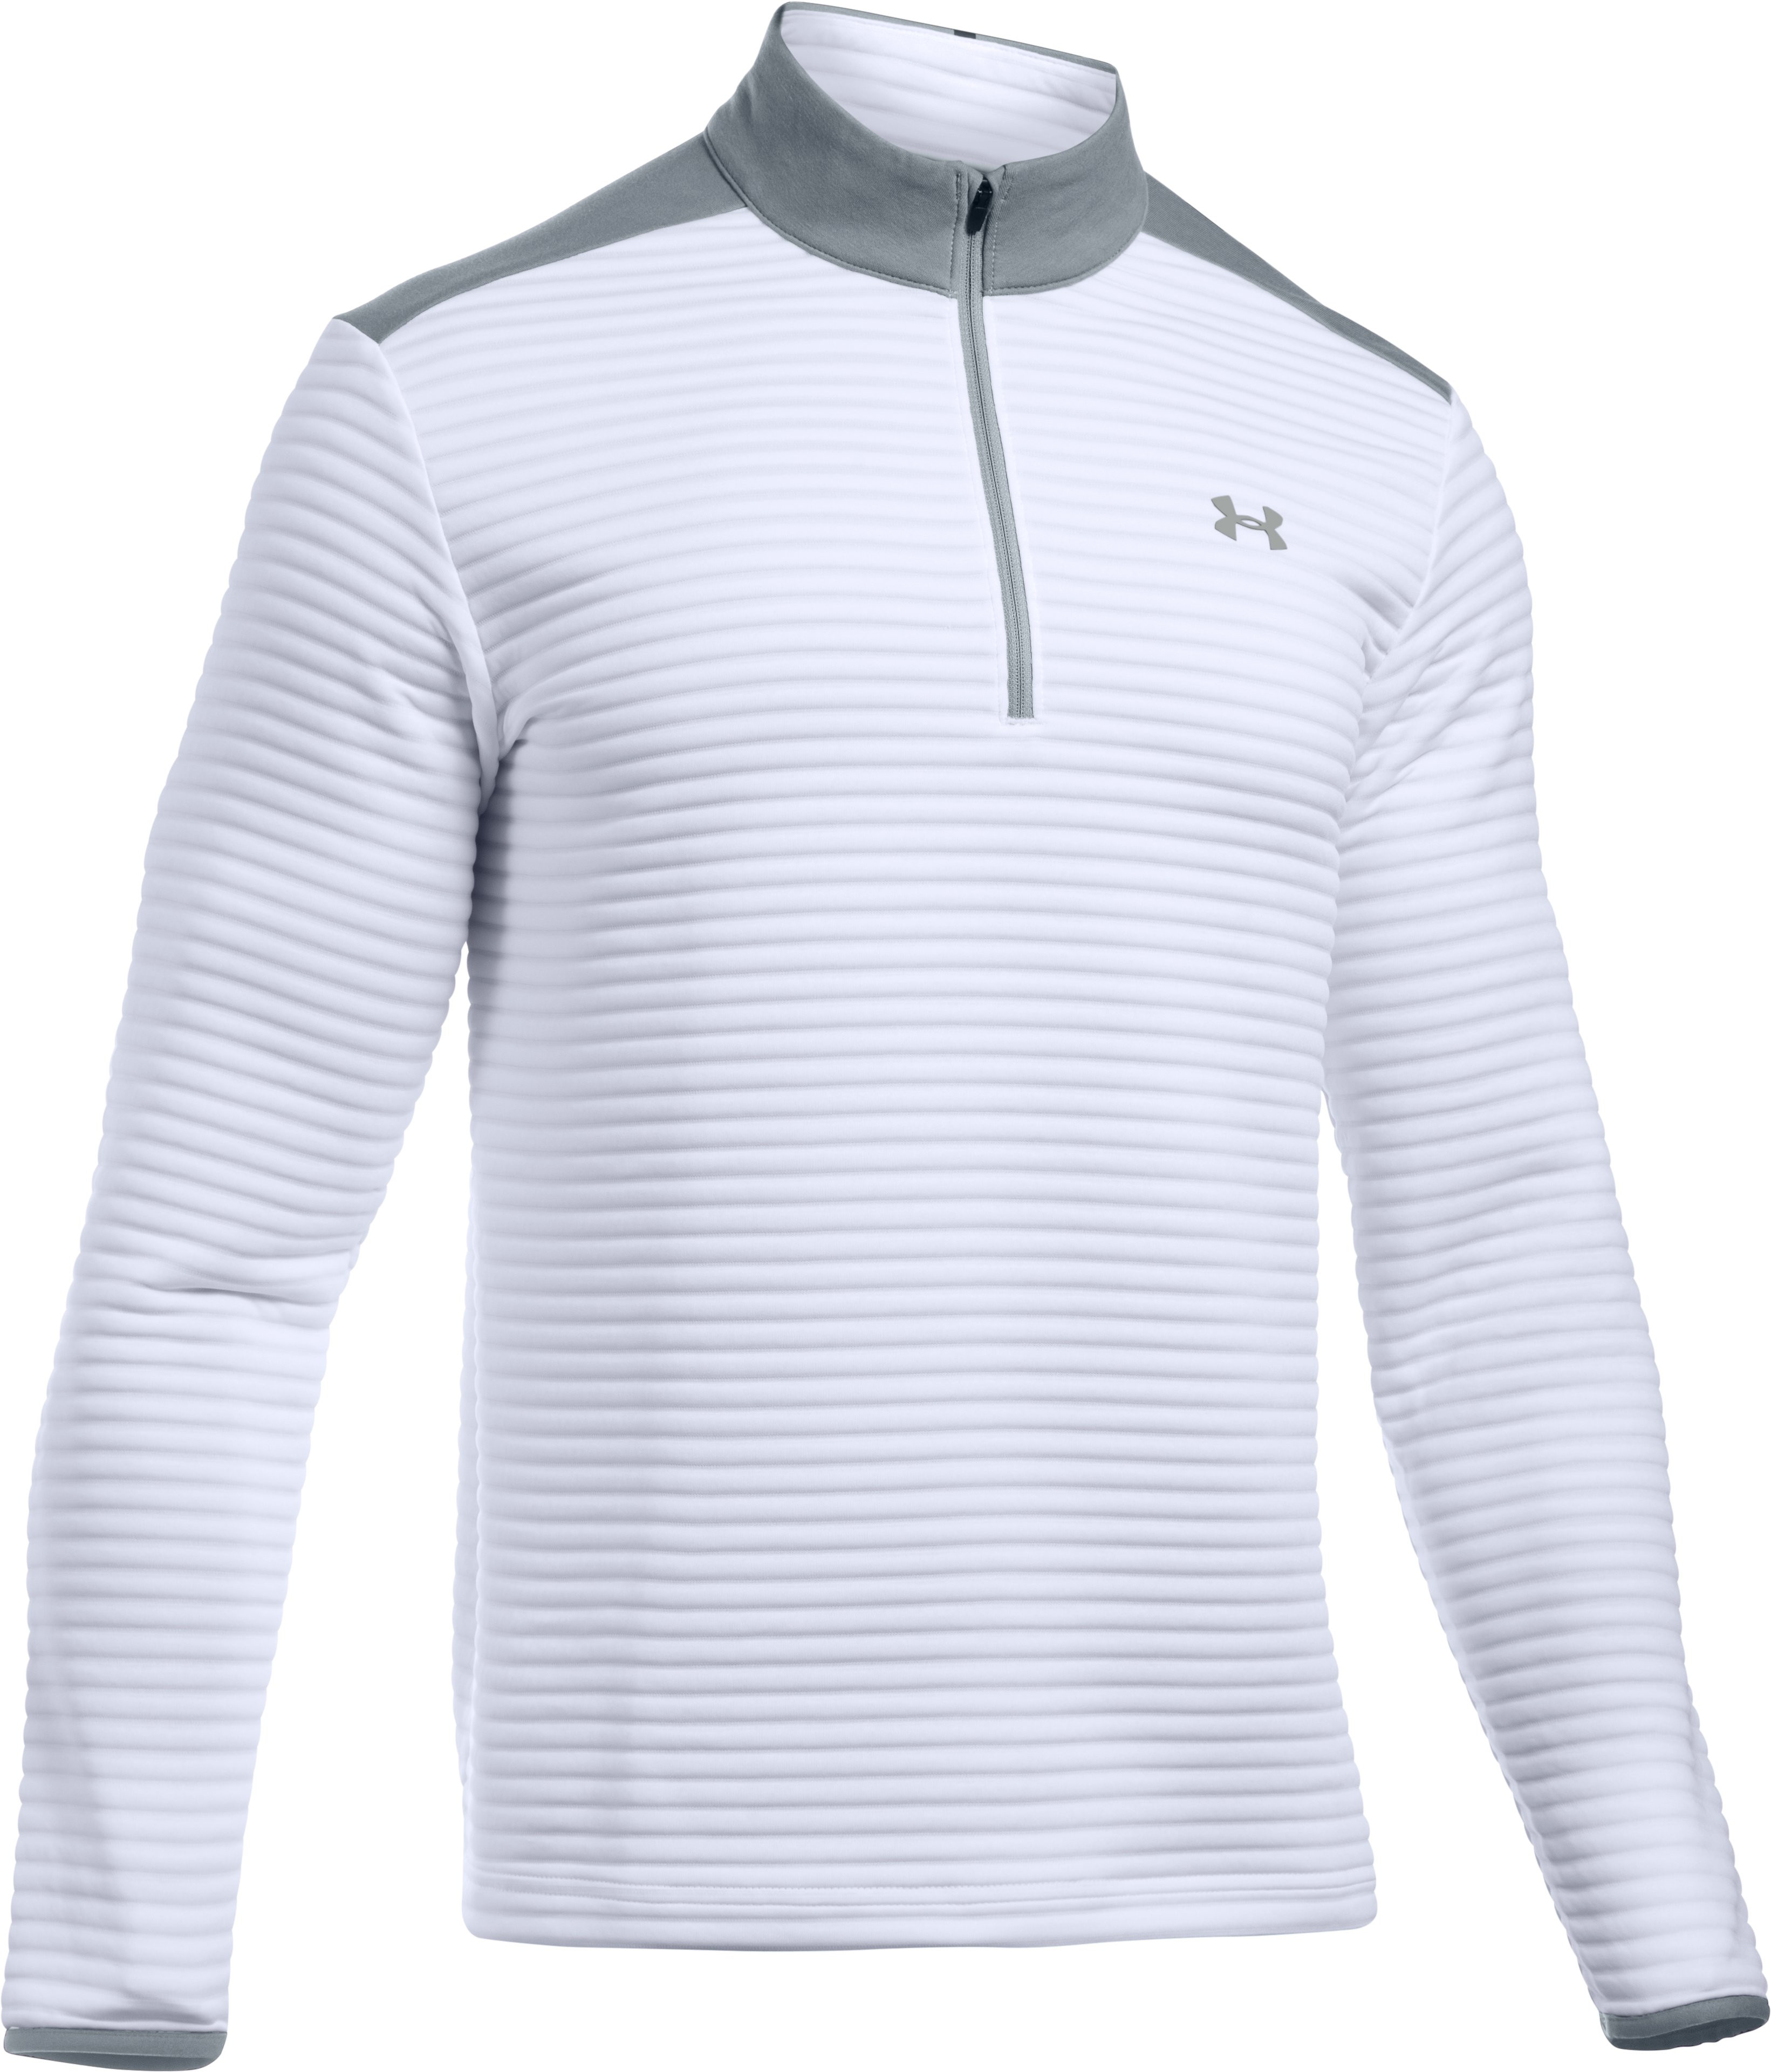 Men's UA Tips Daytona ¼ Zip, White